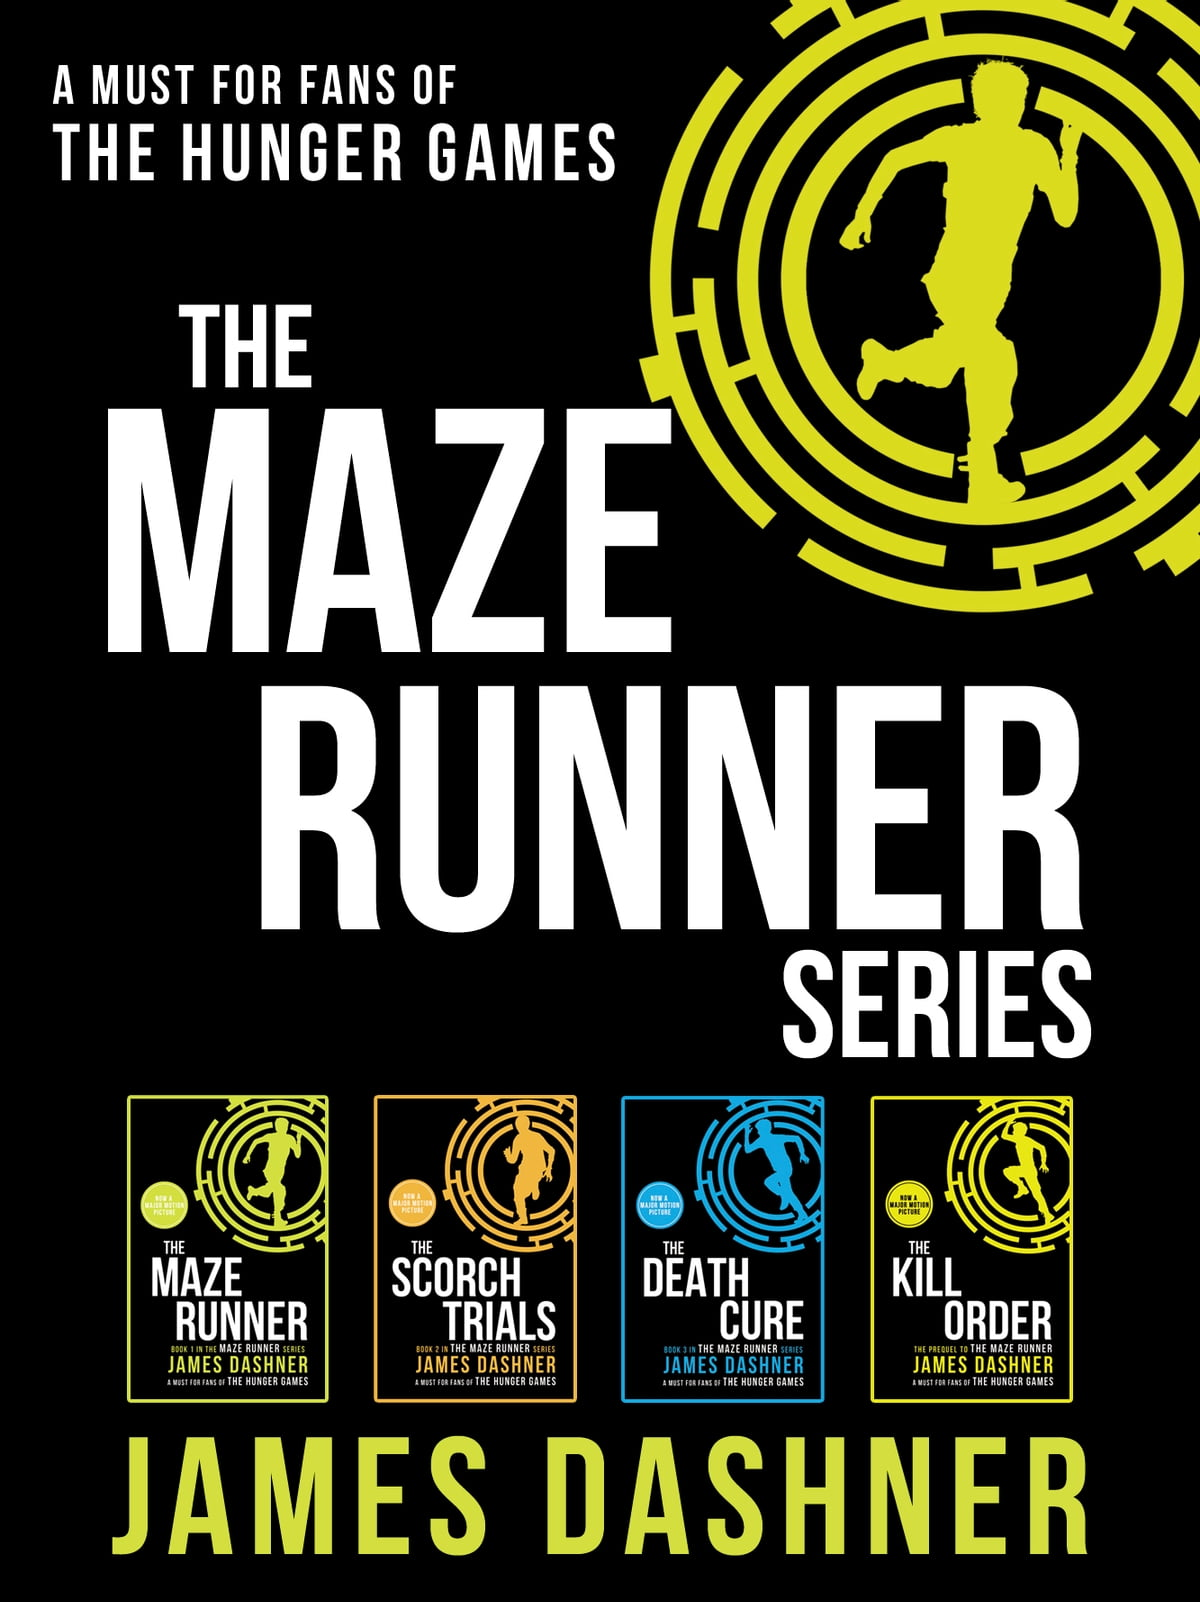 The Maze Runner Book 2 Ebook